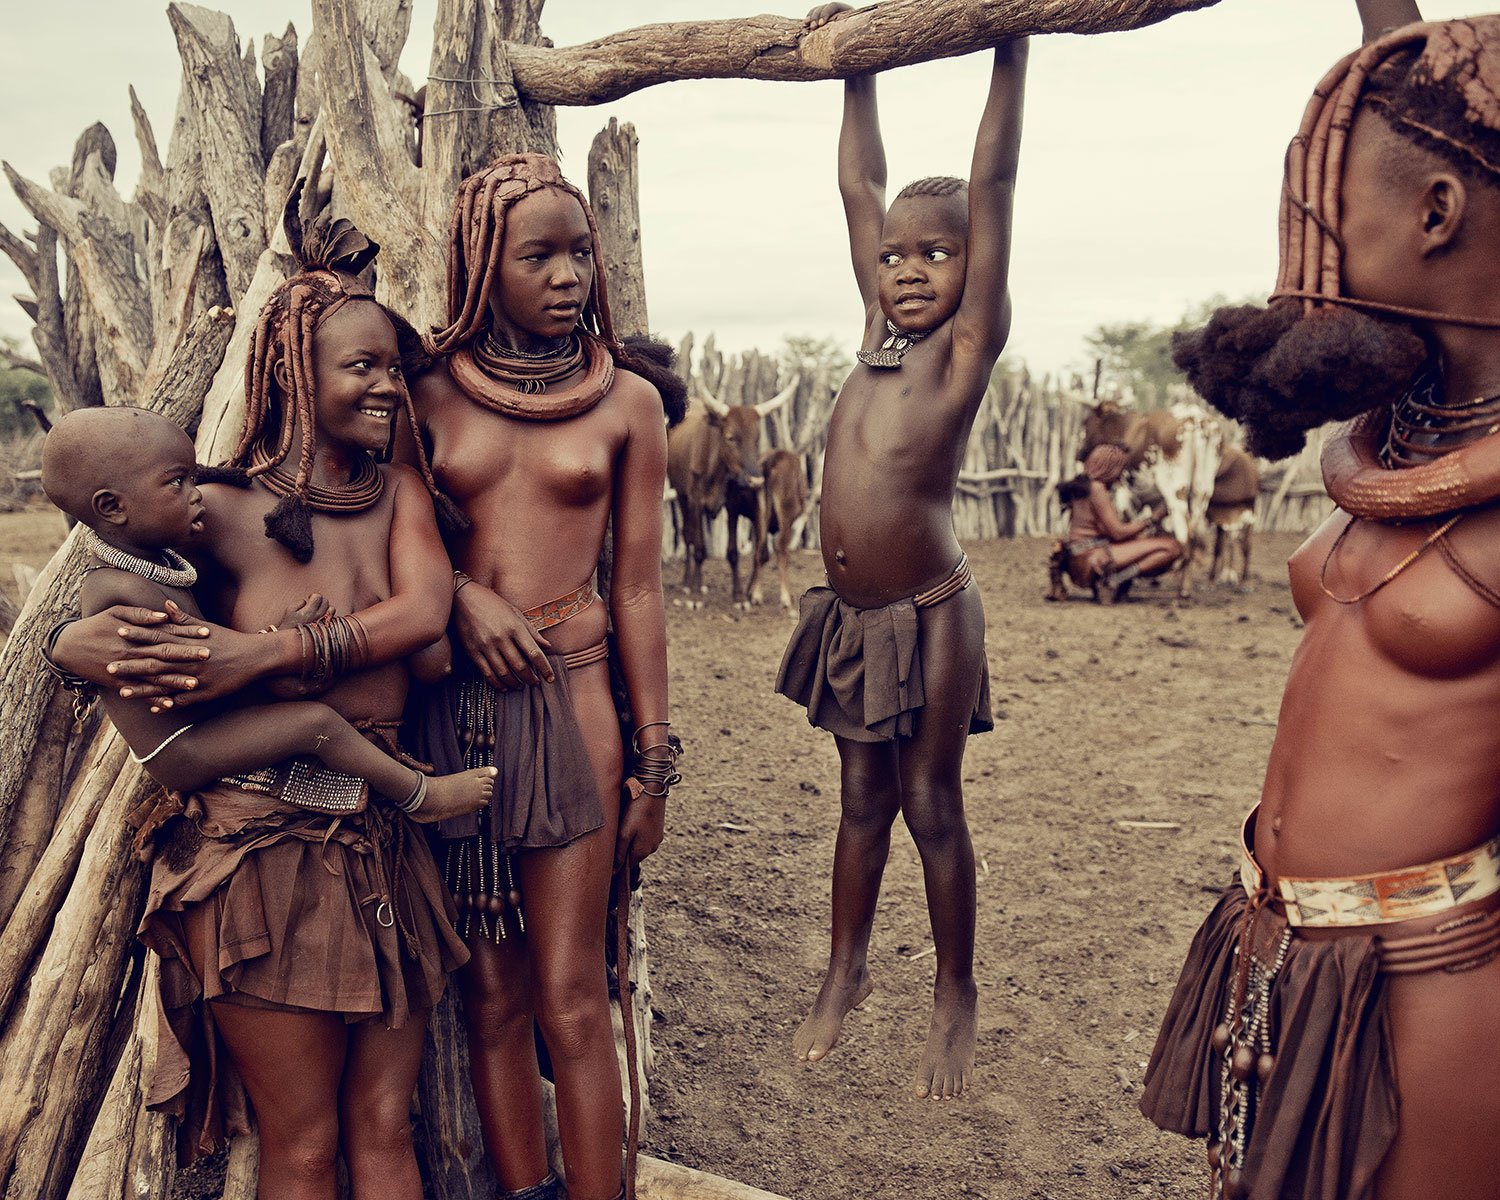 african tribe nude namibia, himba, africa, african tribe, namibian tribe, himba culture, himba